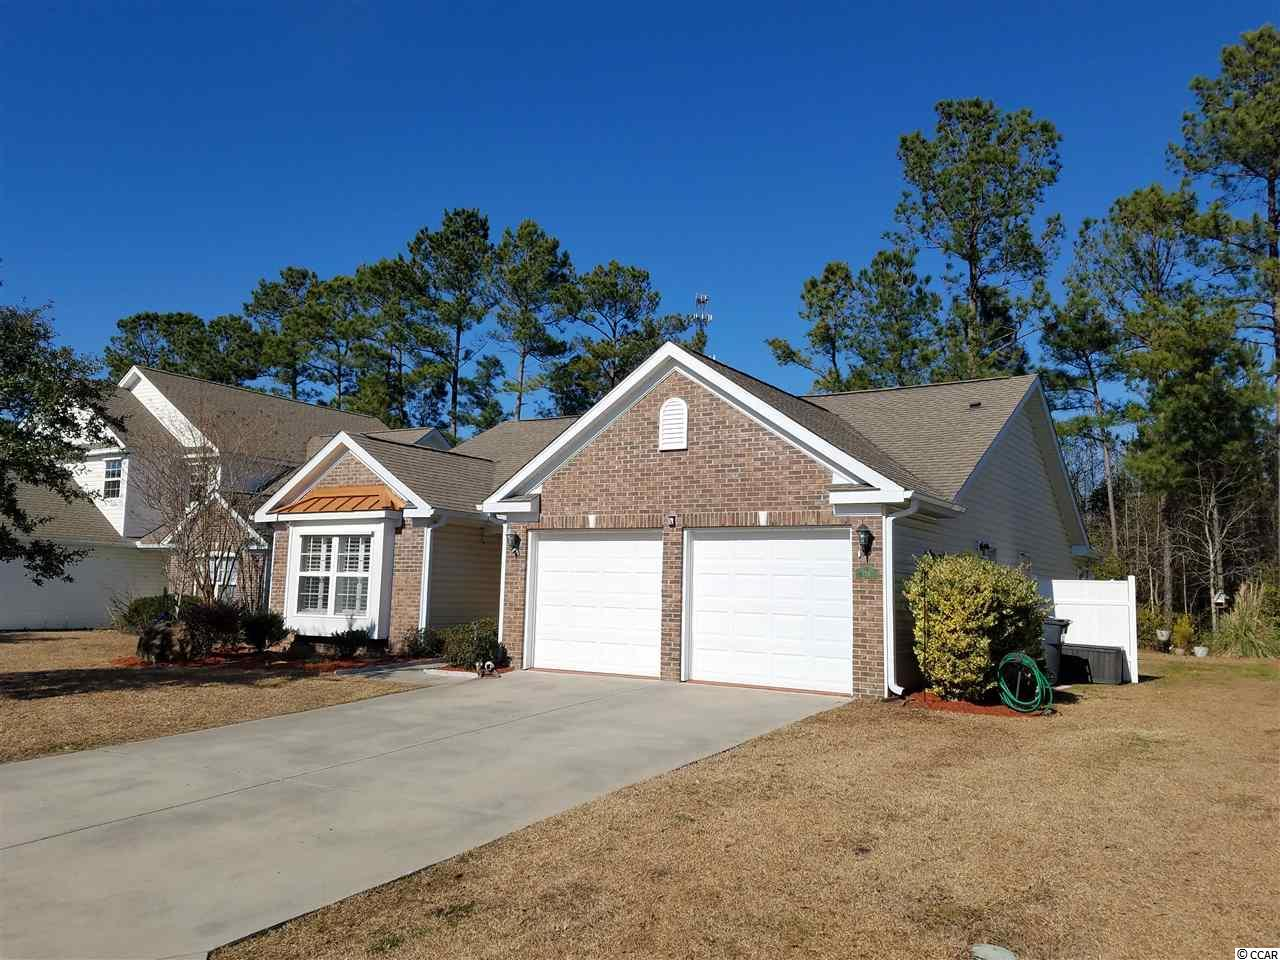 Beautiful home in Carolina Crossing. 3 Bedroom, 2 Bath in well sought after community. Great kitchen over looking the breakfast nook. Separate laundry room. Large community pool! This area is close to shopping and all that North Myrtle Beach has to offer. Only a 10 minute drive to the beach. For those looking for privacy You don't want to miss the opportunity to check out this home. Measurements and square footage are estimated and not guaranteed and should be measured by the buyer. The buyer is responsible for verification